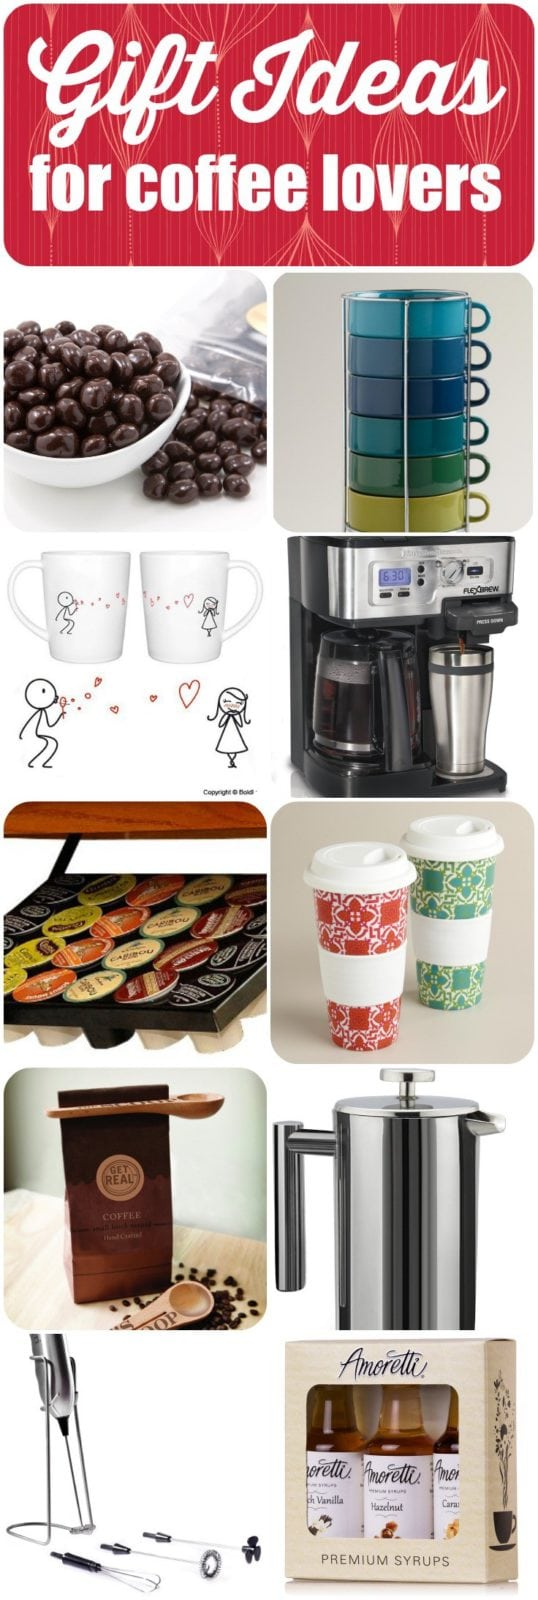 AWESOME IDEAS! 10 fabulous gift ideas for coffee lovers by Designer Trapped in a Lawyer's Body. Make a coffee lover in your life happy! #holidaygiftguide